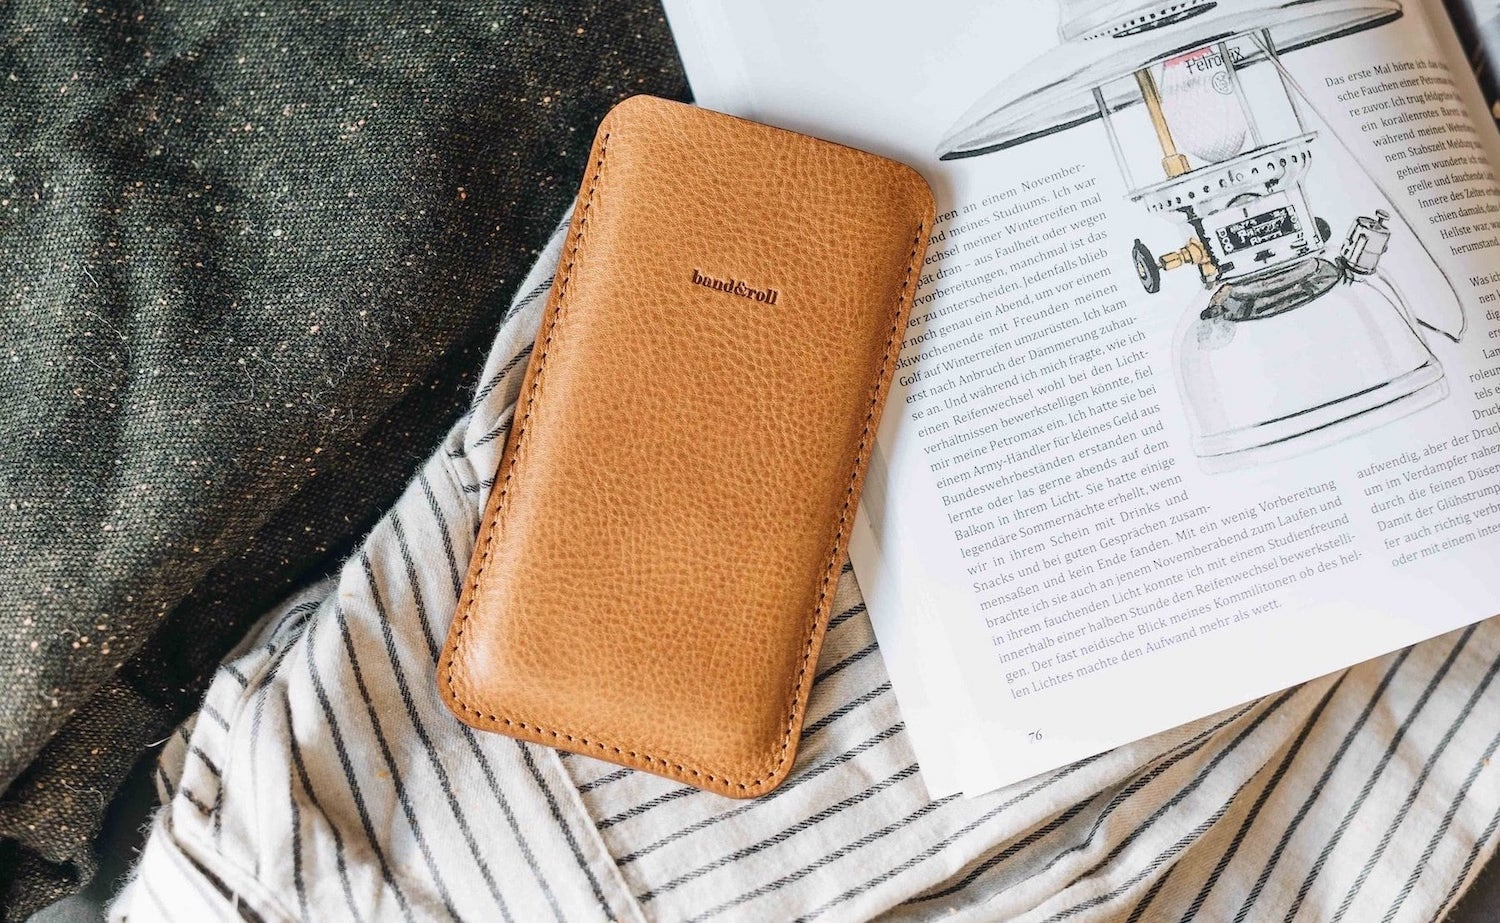 band&roll Dandy Leather Phone Sleeve offers a minimalist way to protect your device